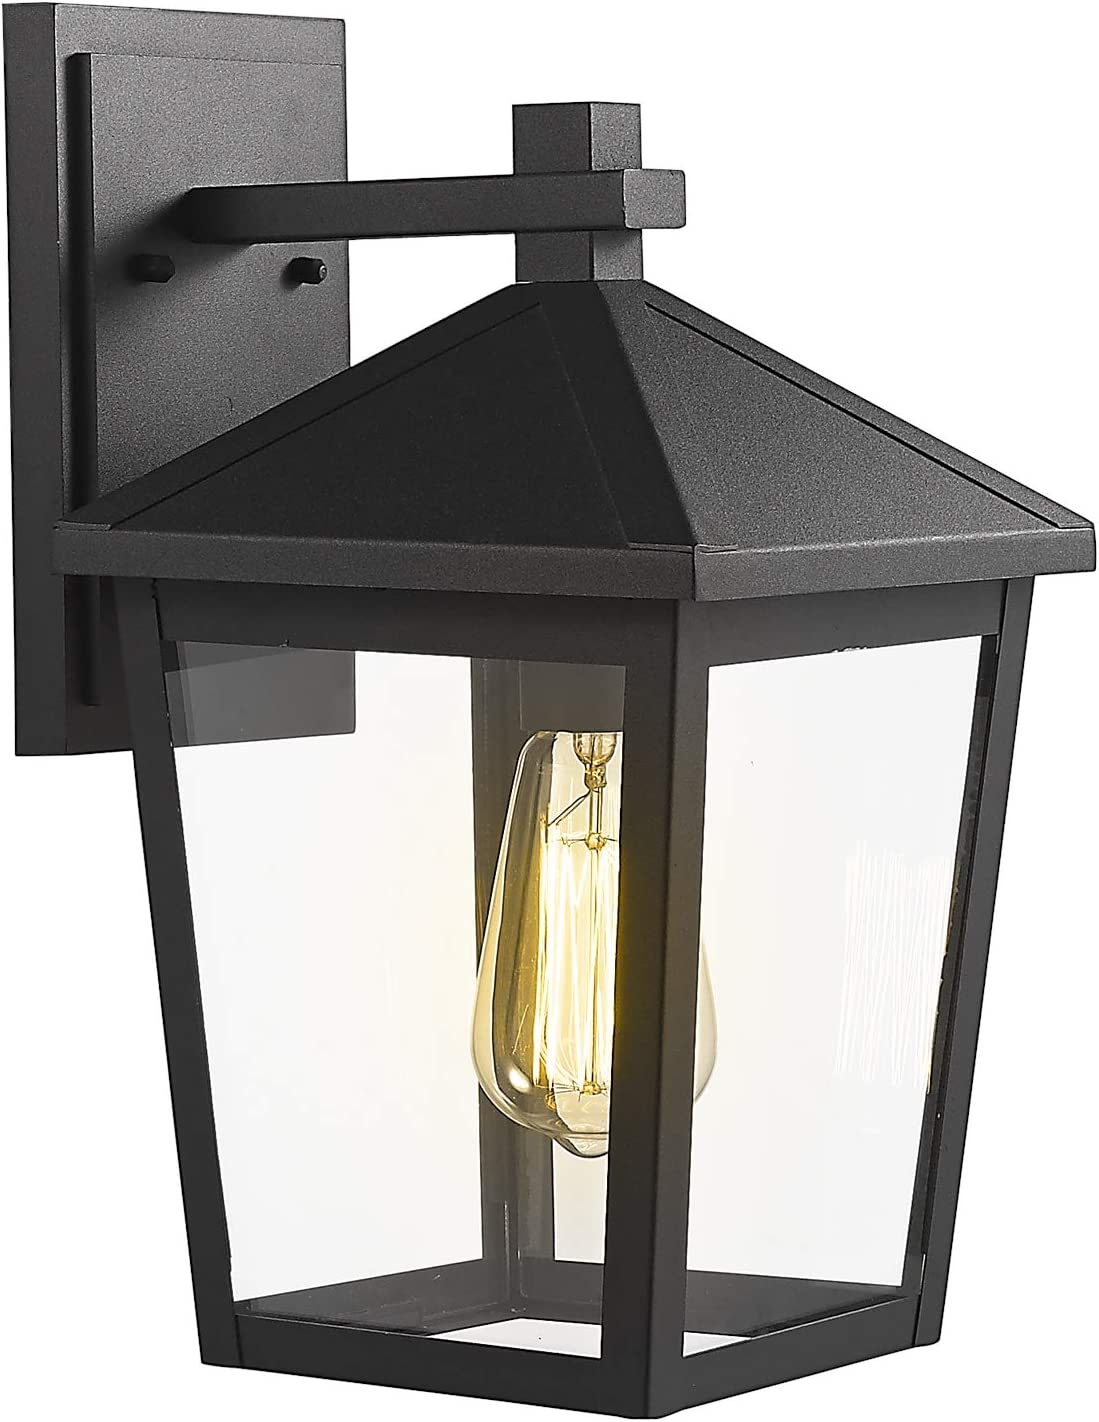 Zeyu Sales Exterior Wall Light Outdoor Porch Lantern Free shipping for Sconce